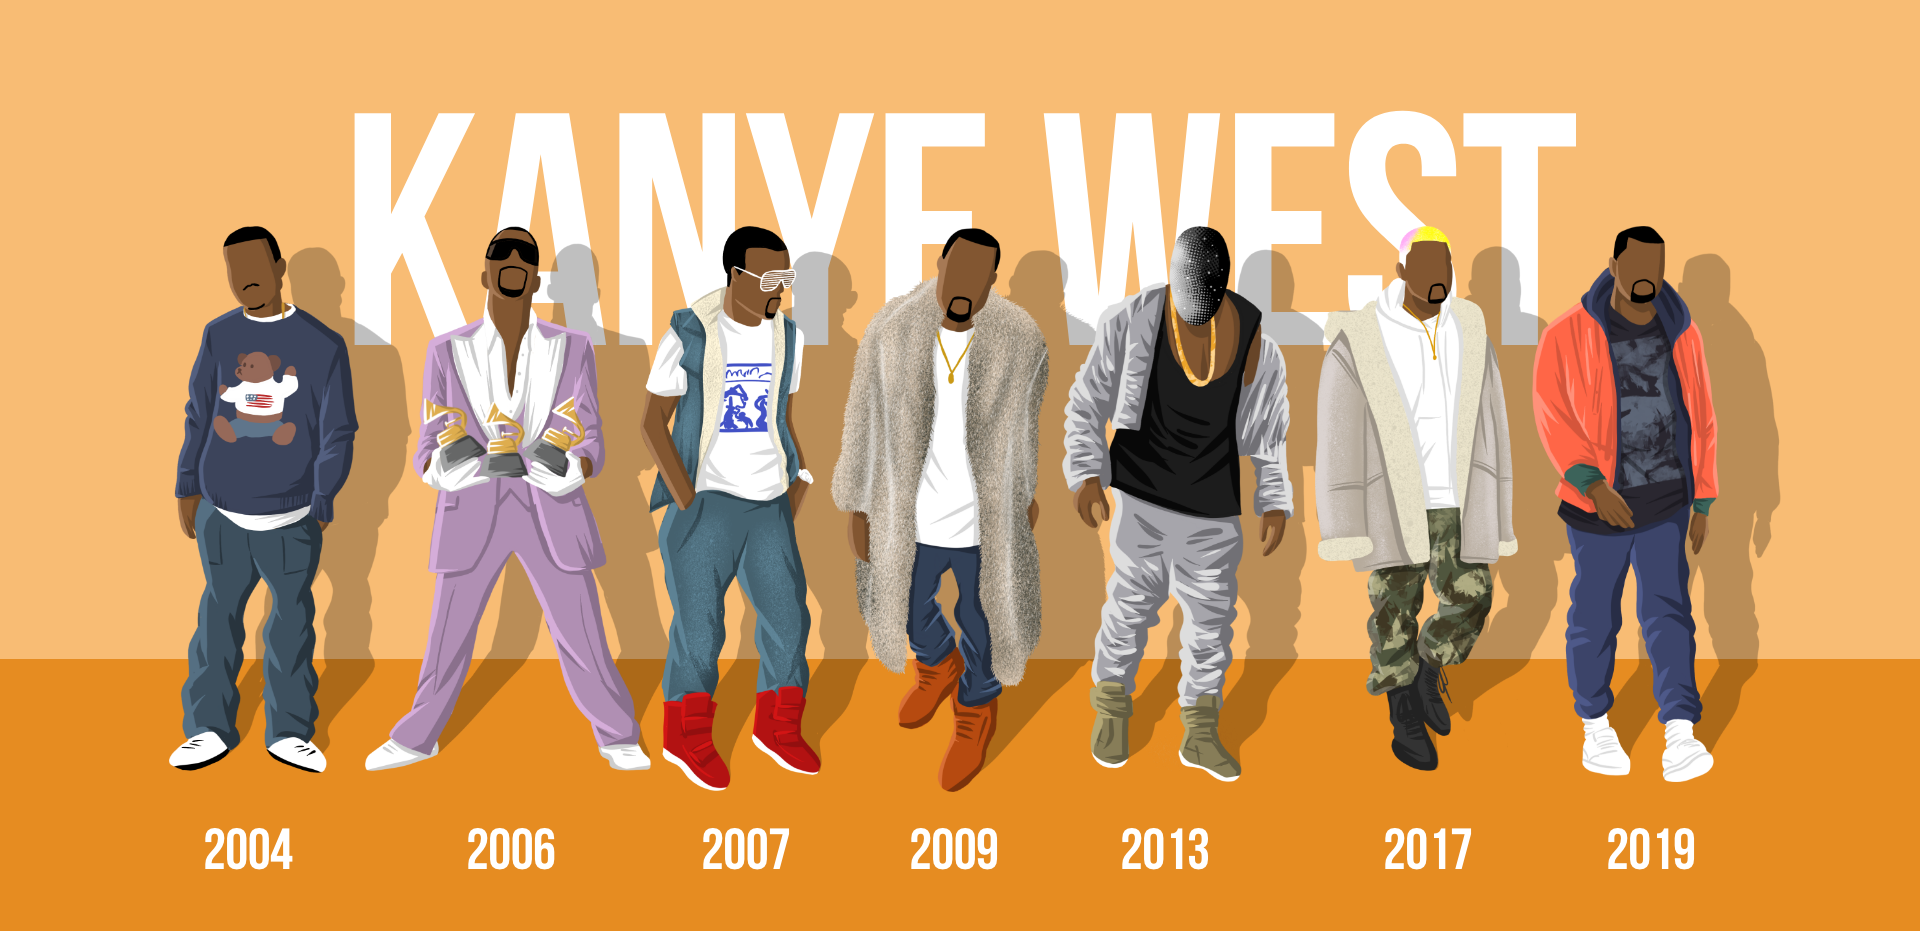 The Most Outrageous Celebrity Style Evolutions Celebrity Wotnot Kanye West Style Kanye West Celebrity Style